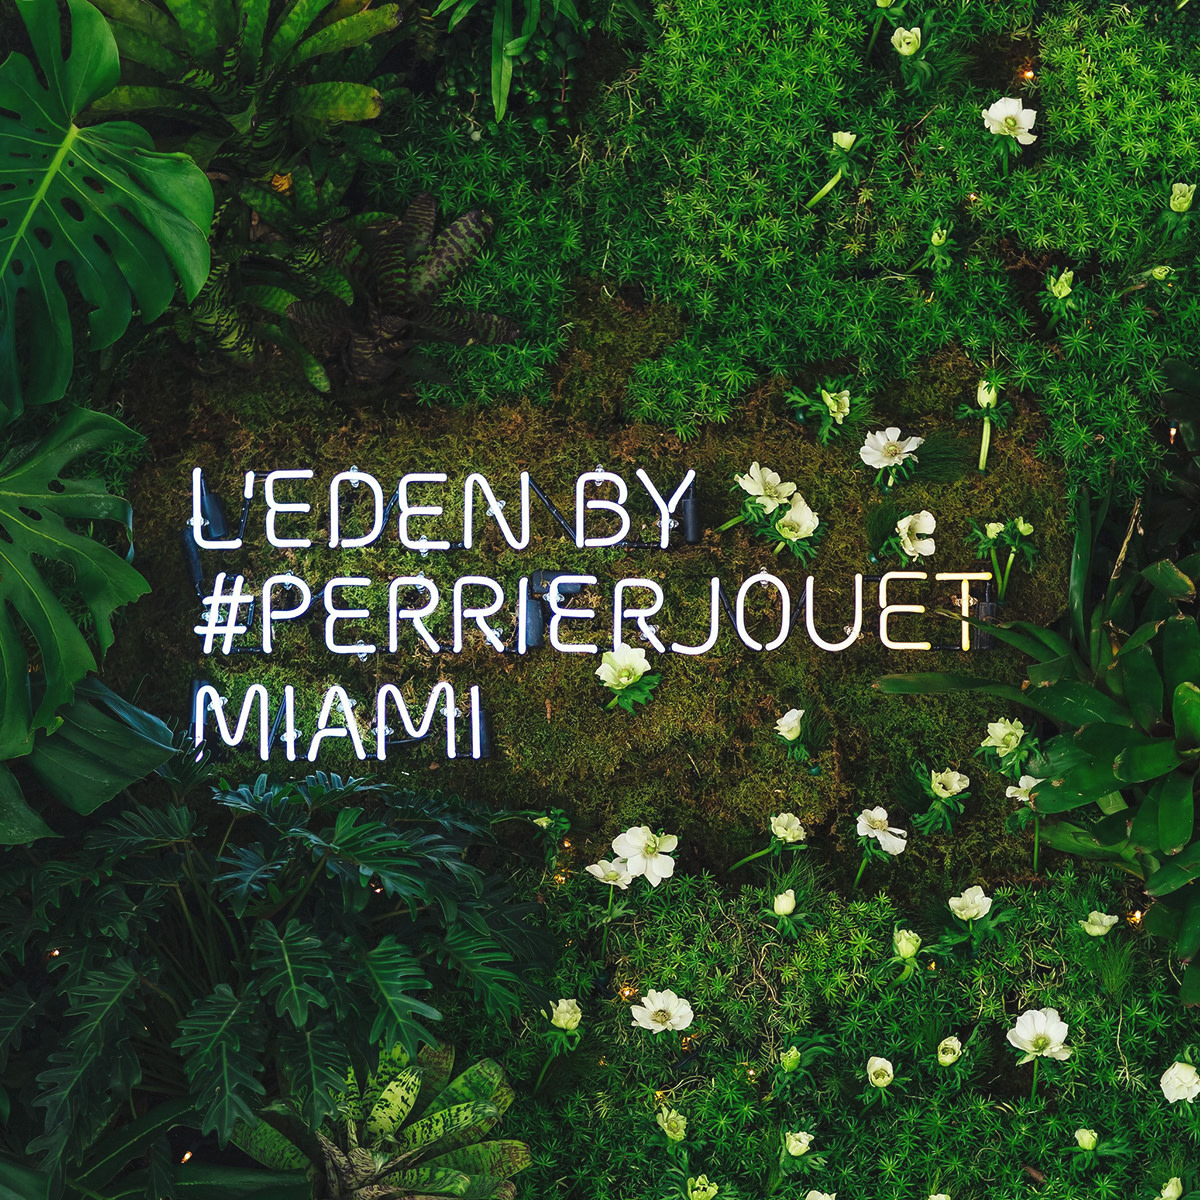 L'Eden by Perrier-Jouët